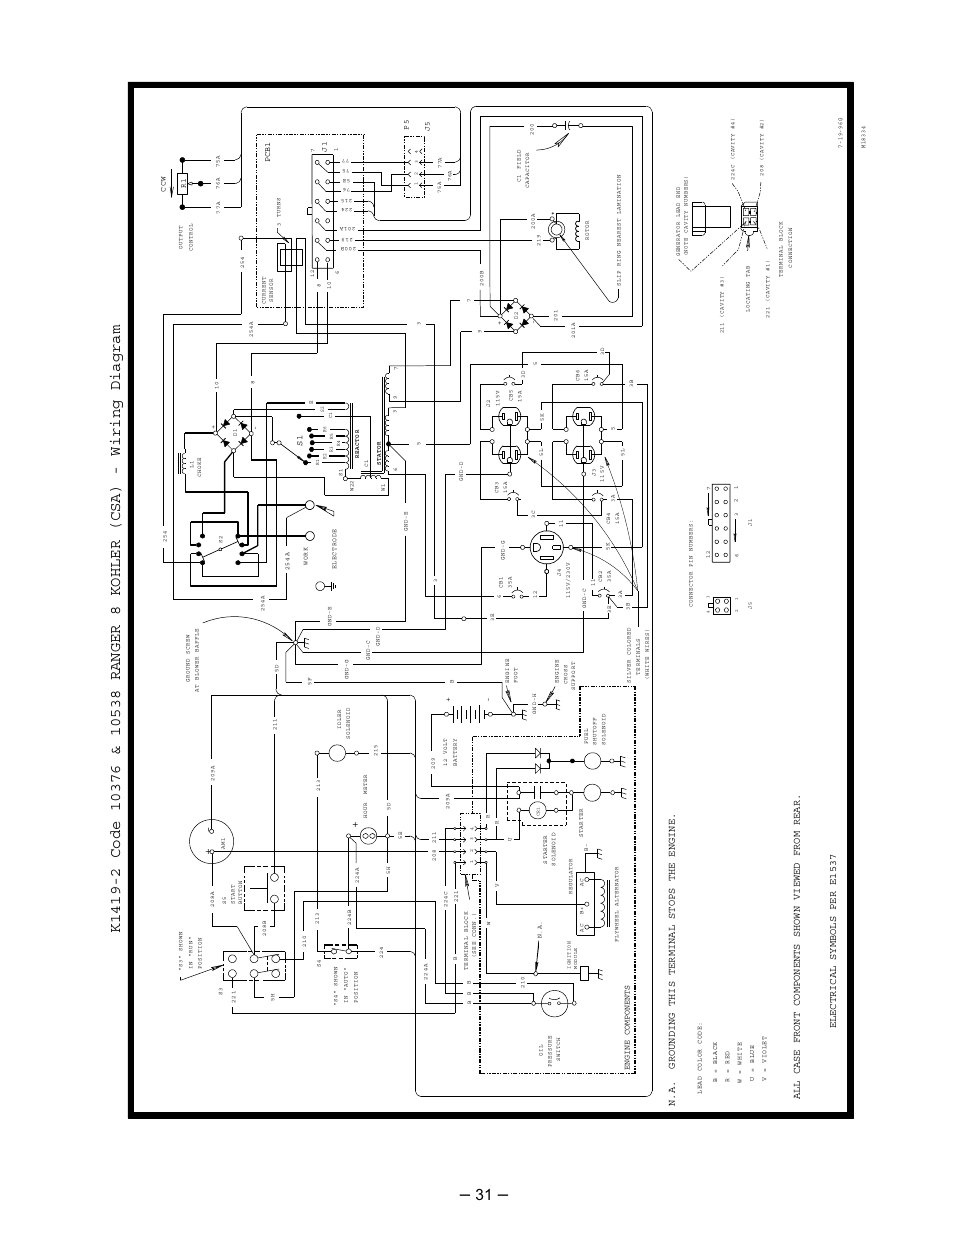 lincoln electric wiring diagram lincoln wiring diagrams description lincoln ranger 8 wiring diagram wiring a bathroom outlet source